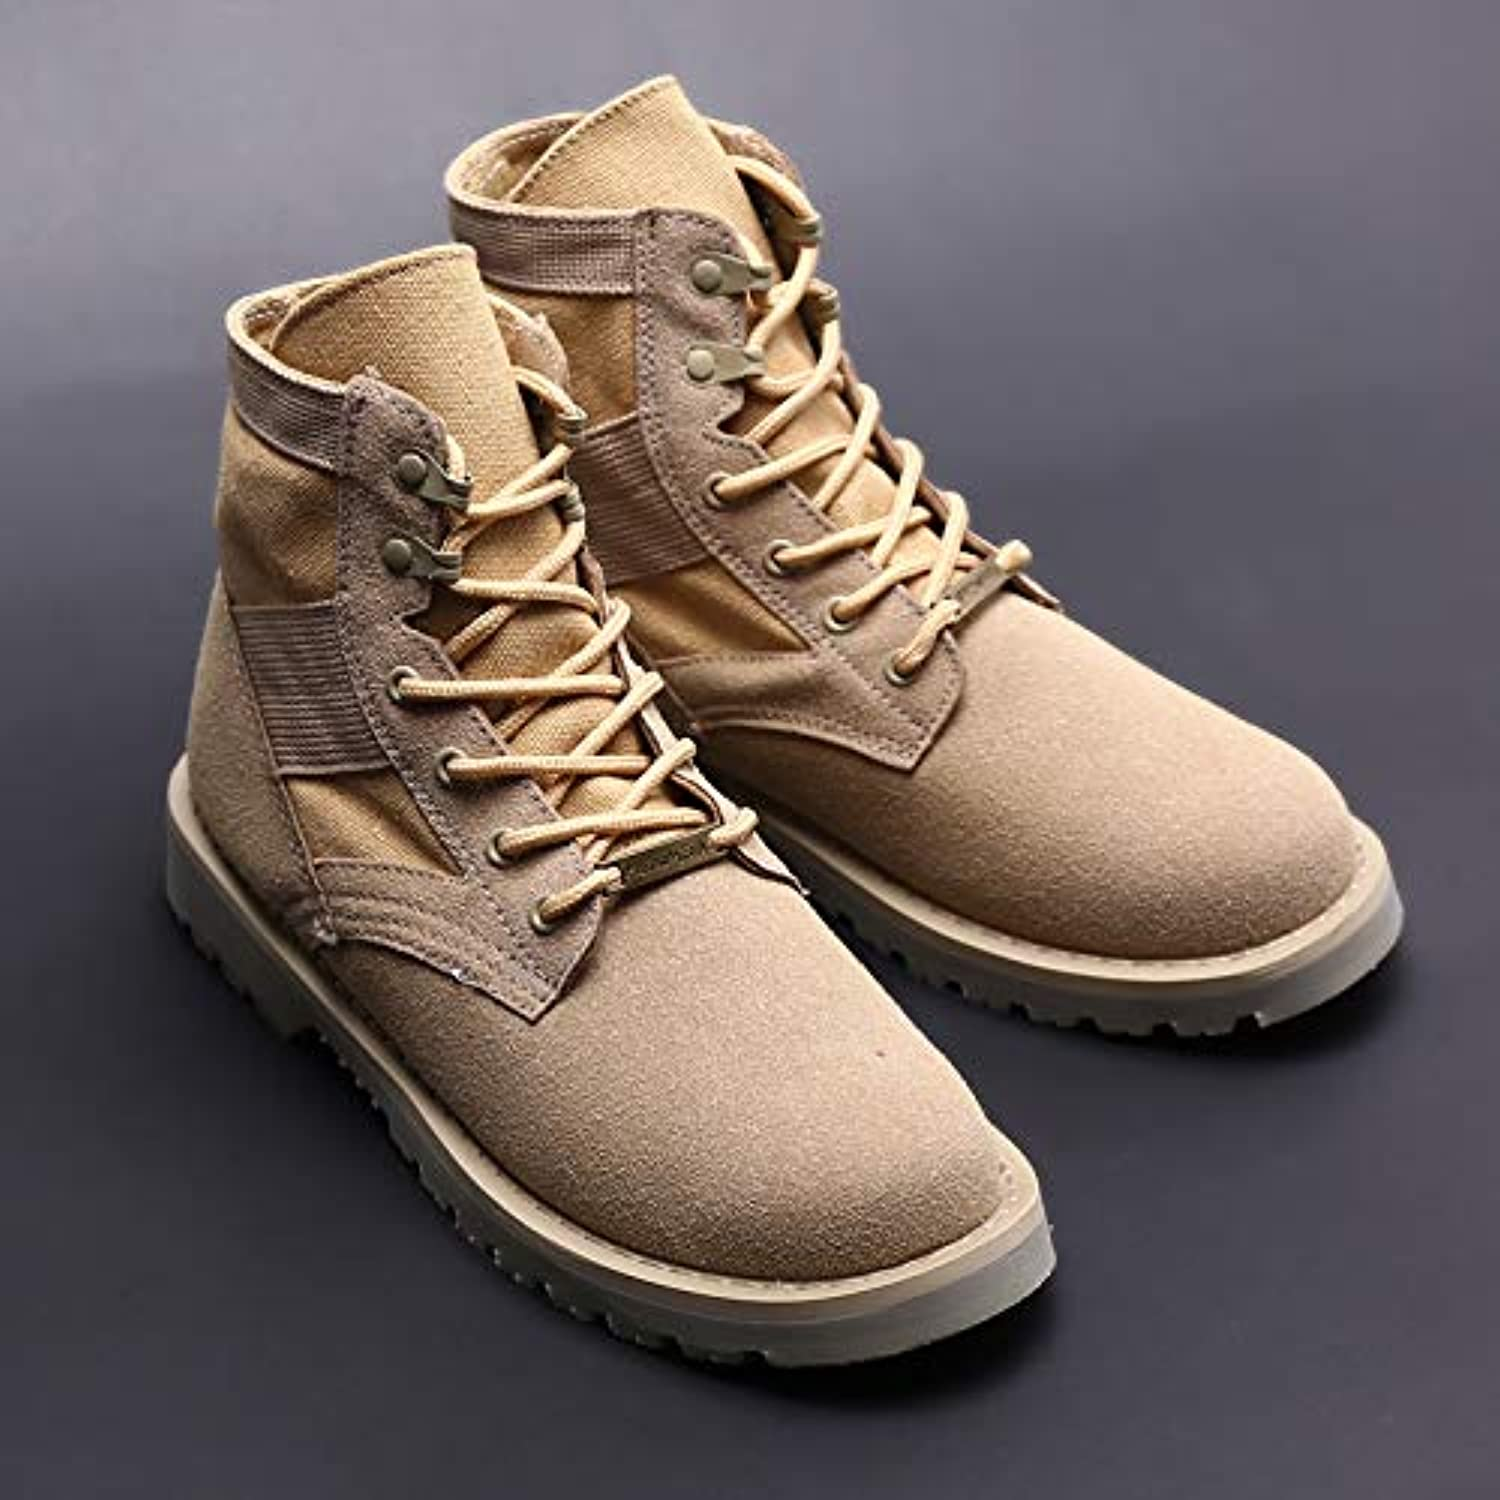 LOVDRAM Boots Men's Winter Desert Boots Men'S Couple Martin Boots Men'S Warm High-Top shoes Cotton Tooling Boots Wild Large Size Boots